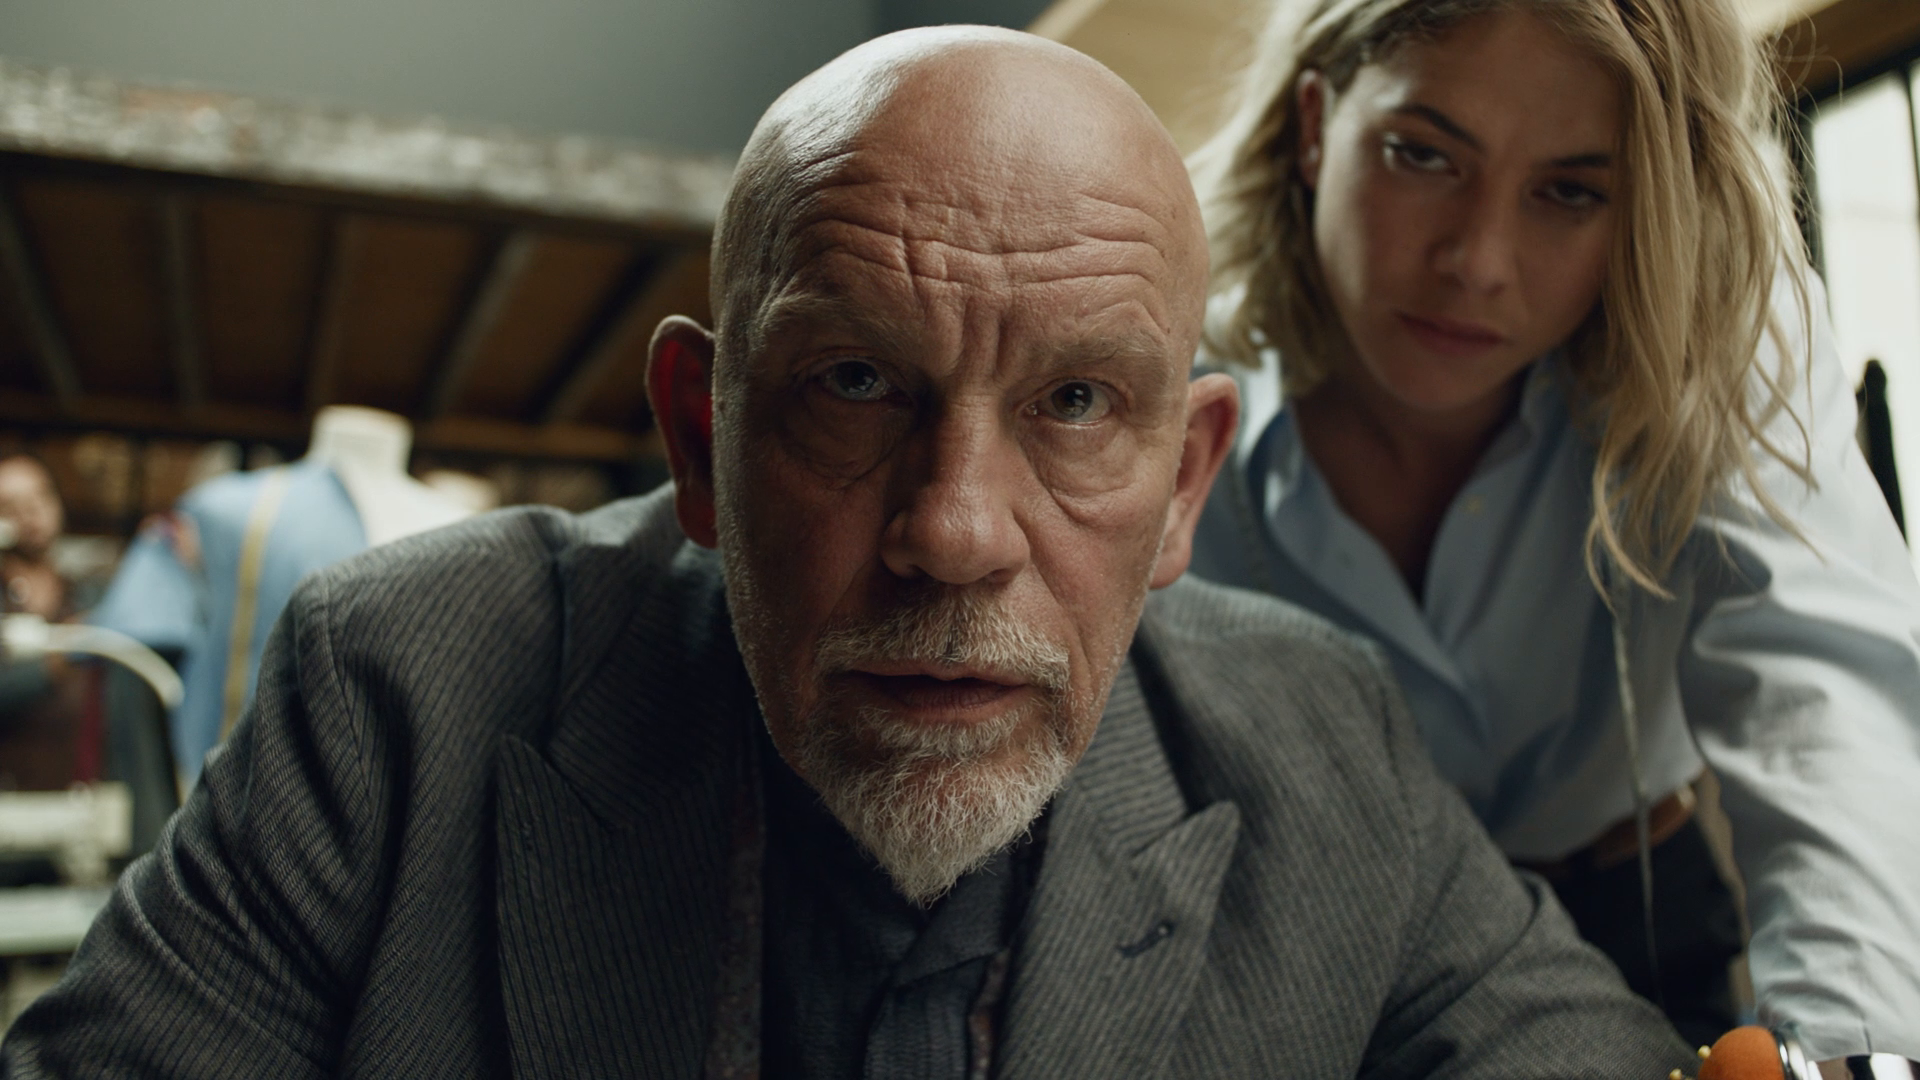 Thumbnail for Who Is JohnMalkovich.com